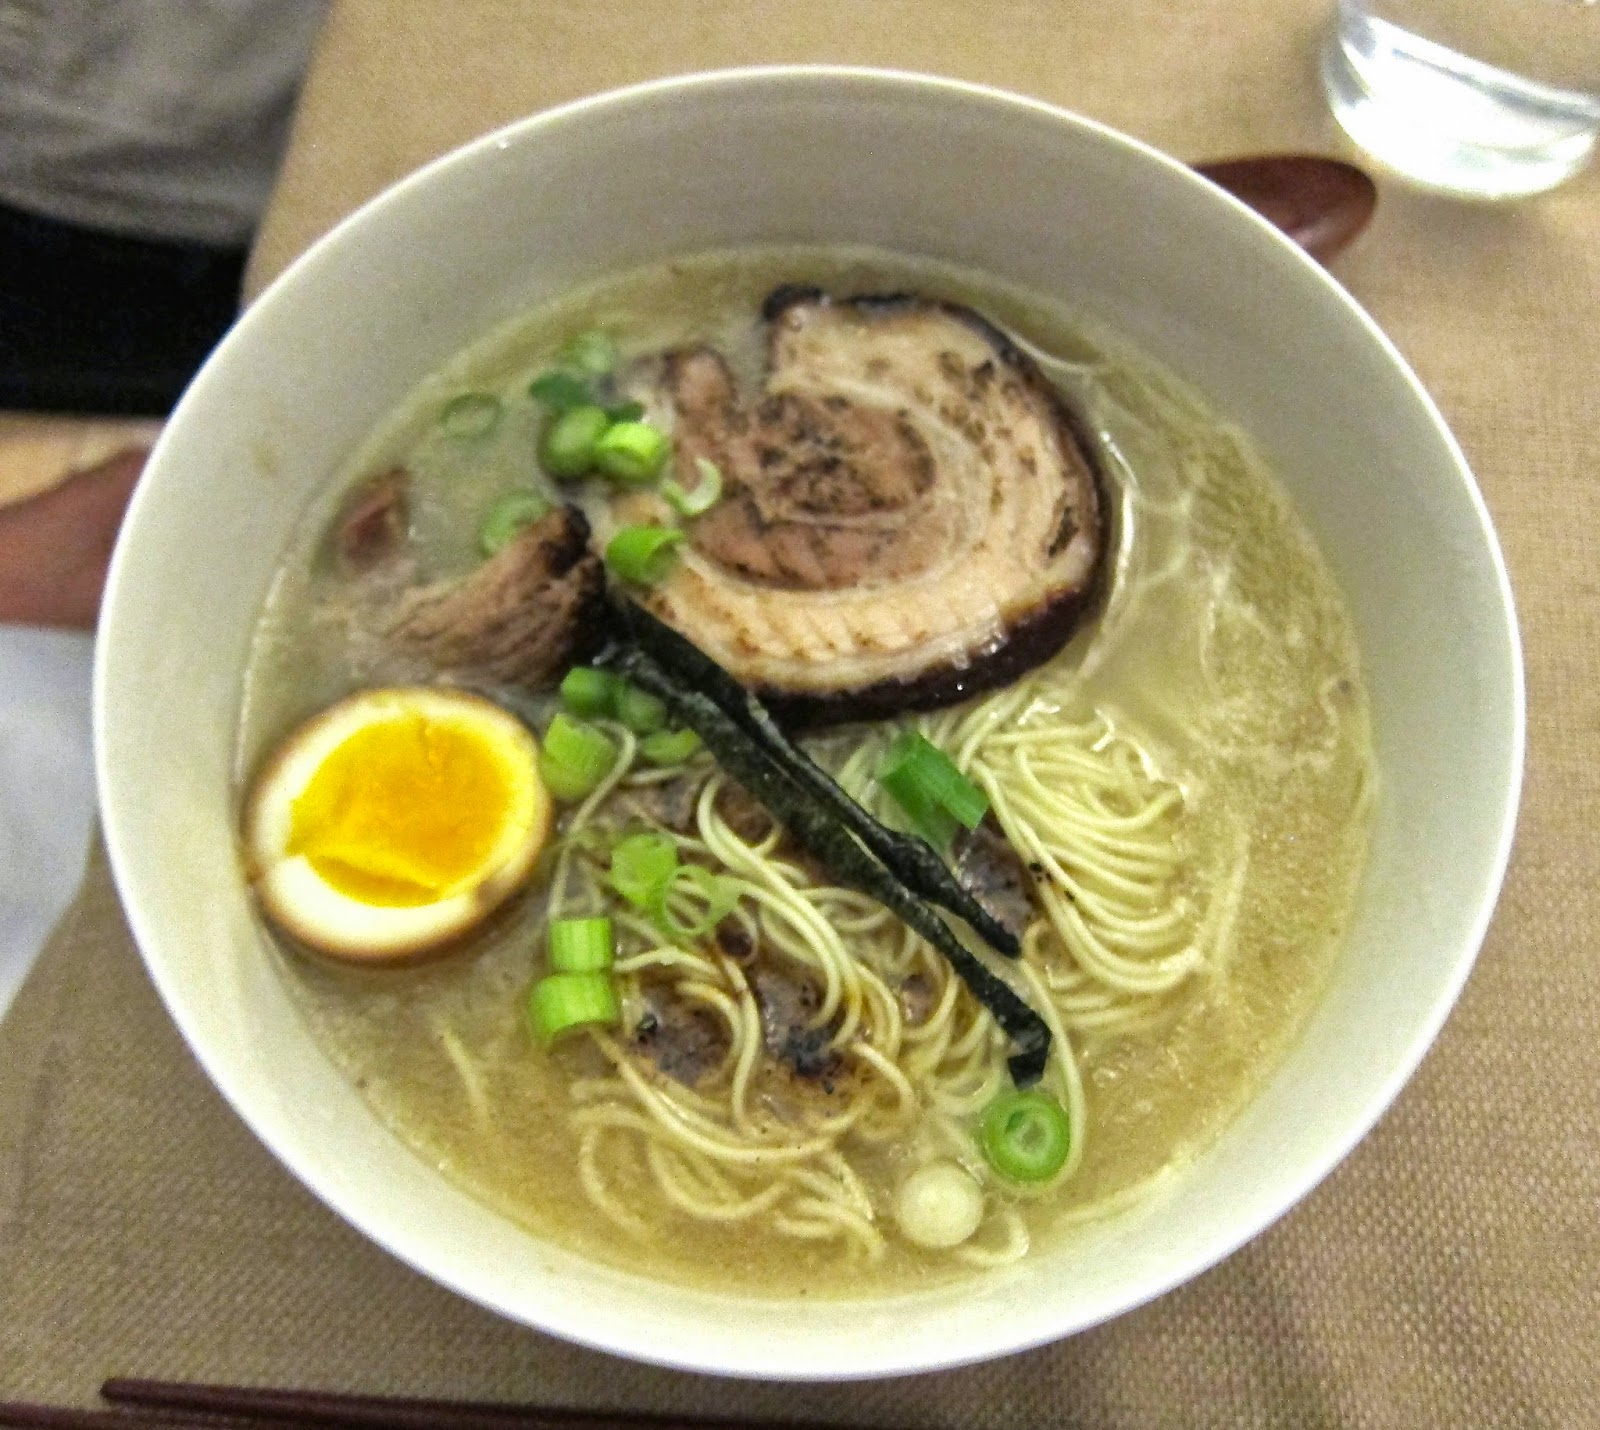 Ramen with tonkotsu broth, chashu pork, and soft-boiled eggs